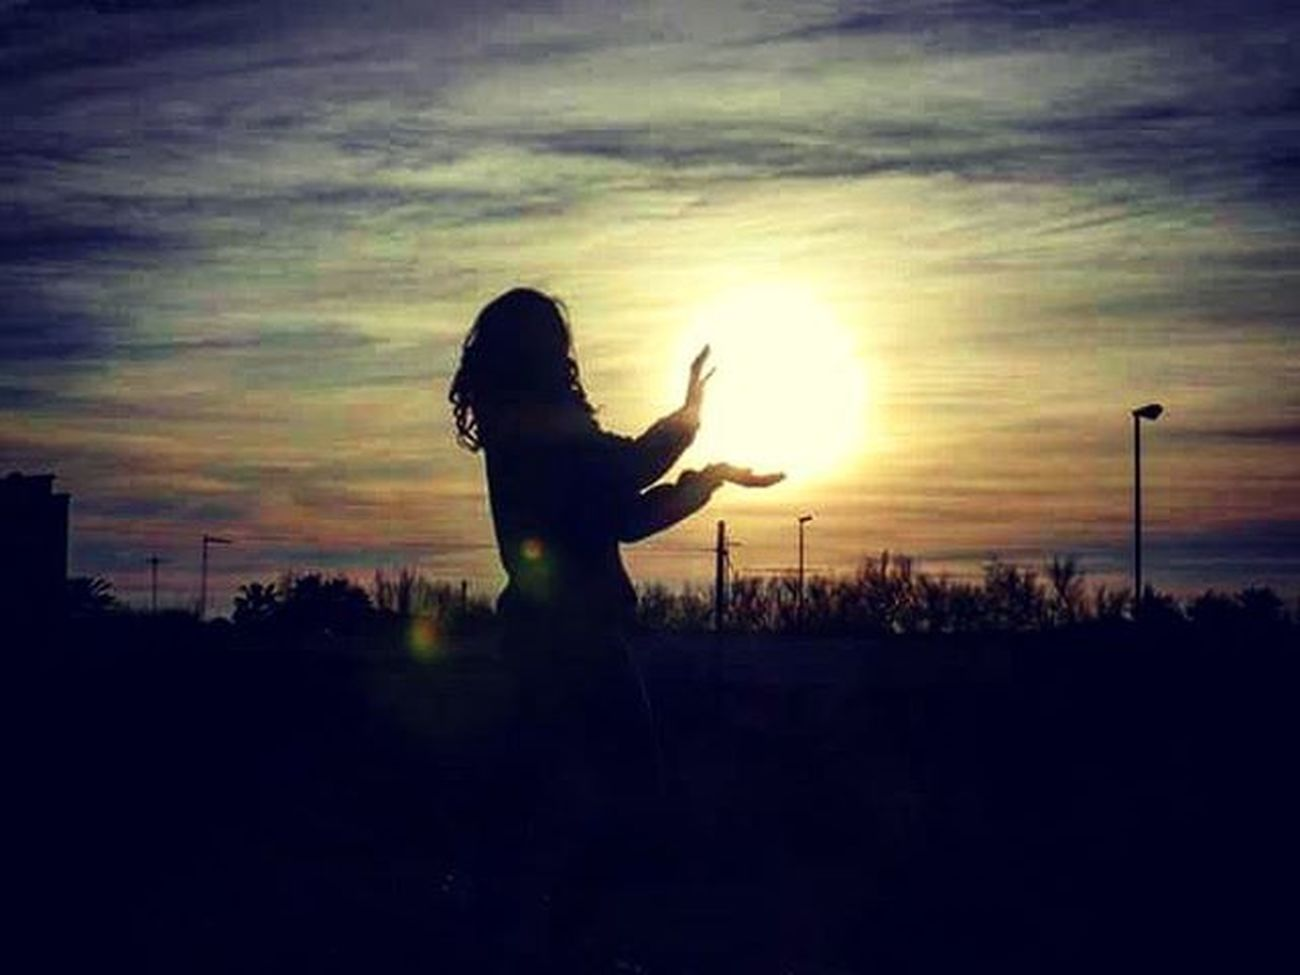 Kamehameha! Likegoku Dragonball In Real Life LOL Funny Funnypic Stupid Sun Sunset Throwback Ciao